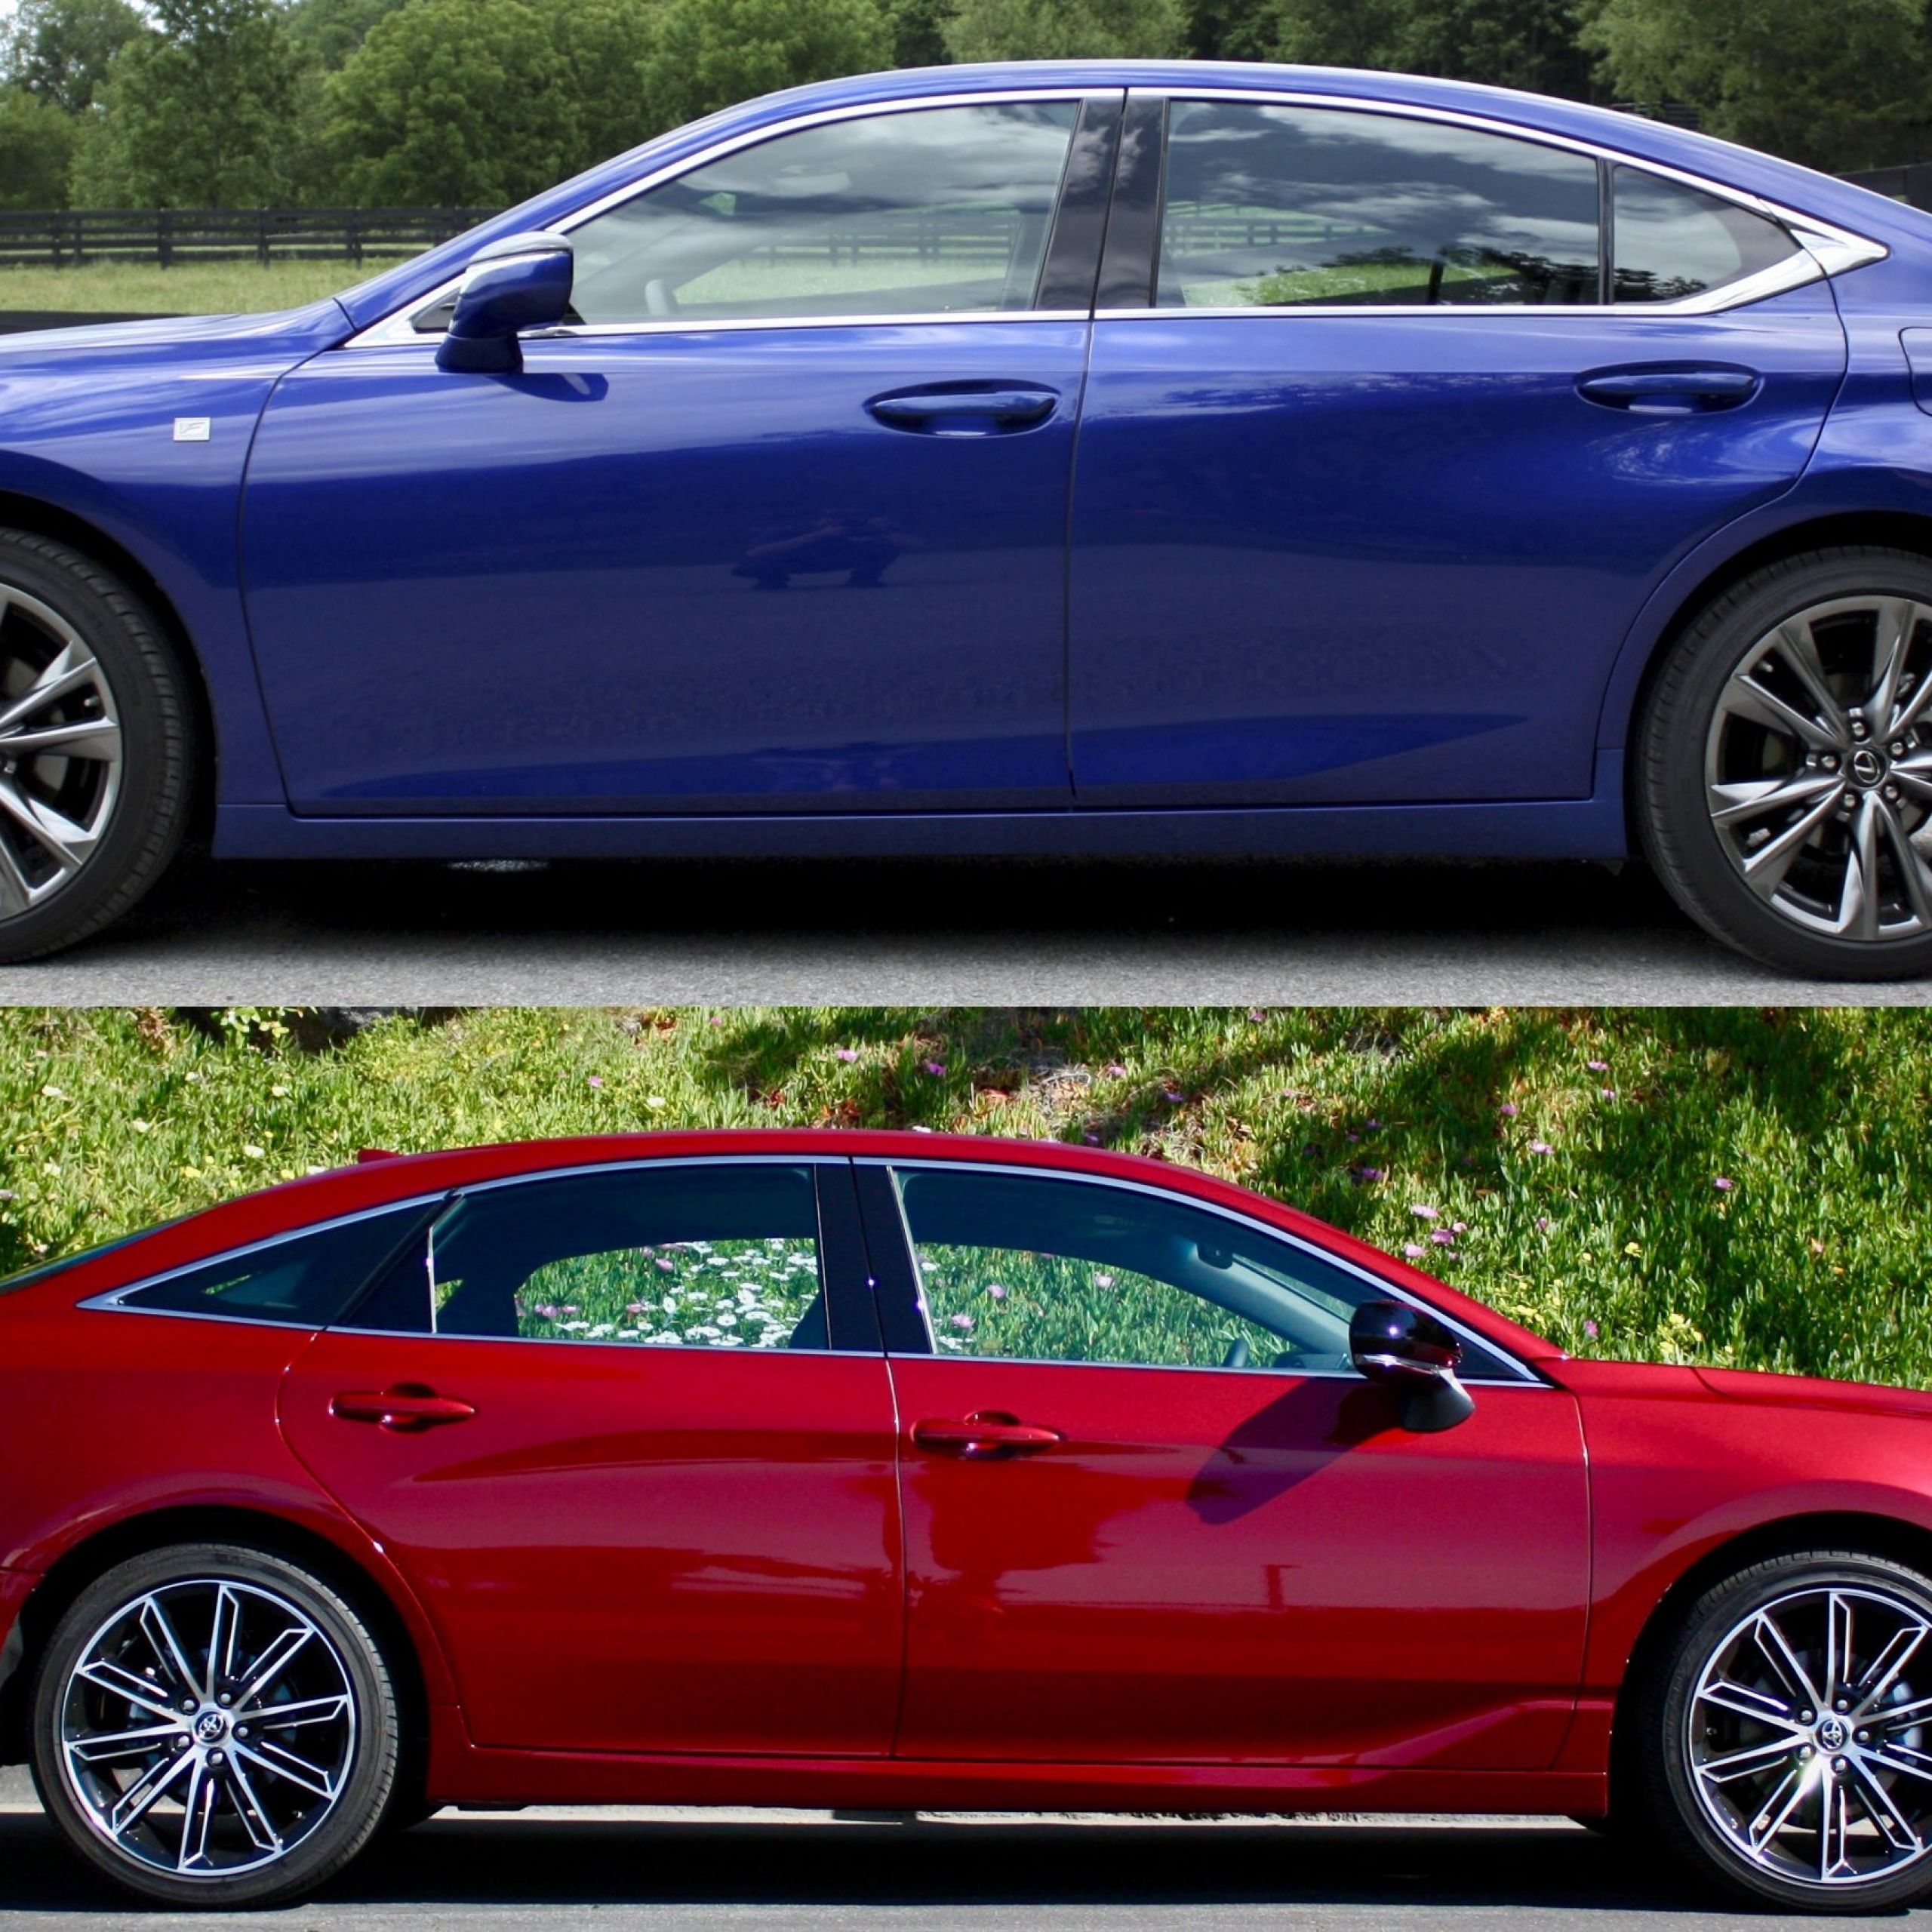 2015 toyota Avalon Lovely 2019 Lexus Es Versus 2019 toyota Avalon which is Better